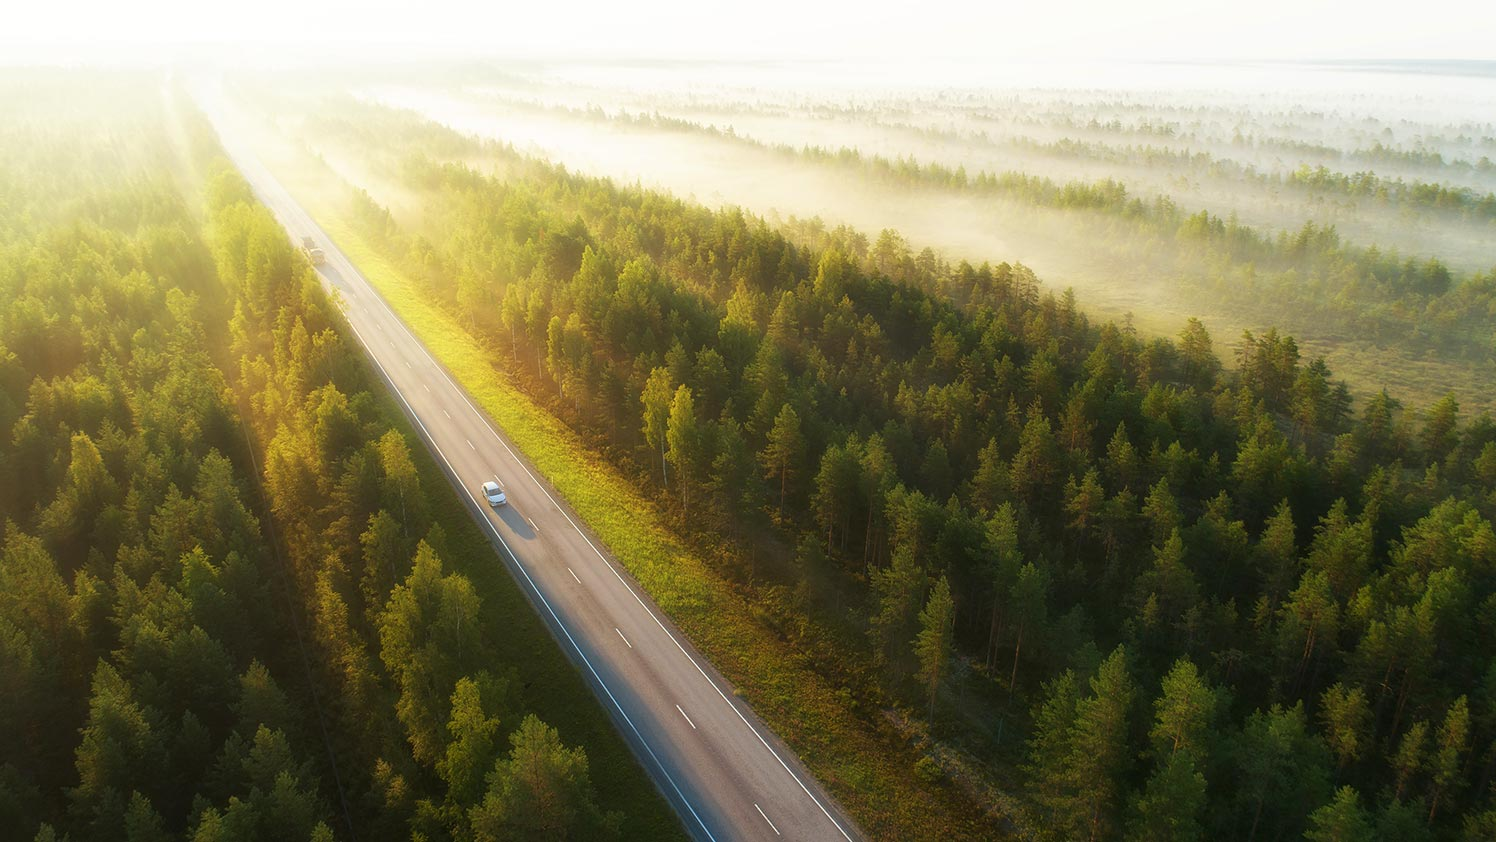 A highway road through green forest sustainability